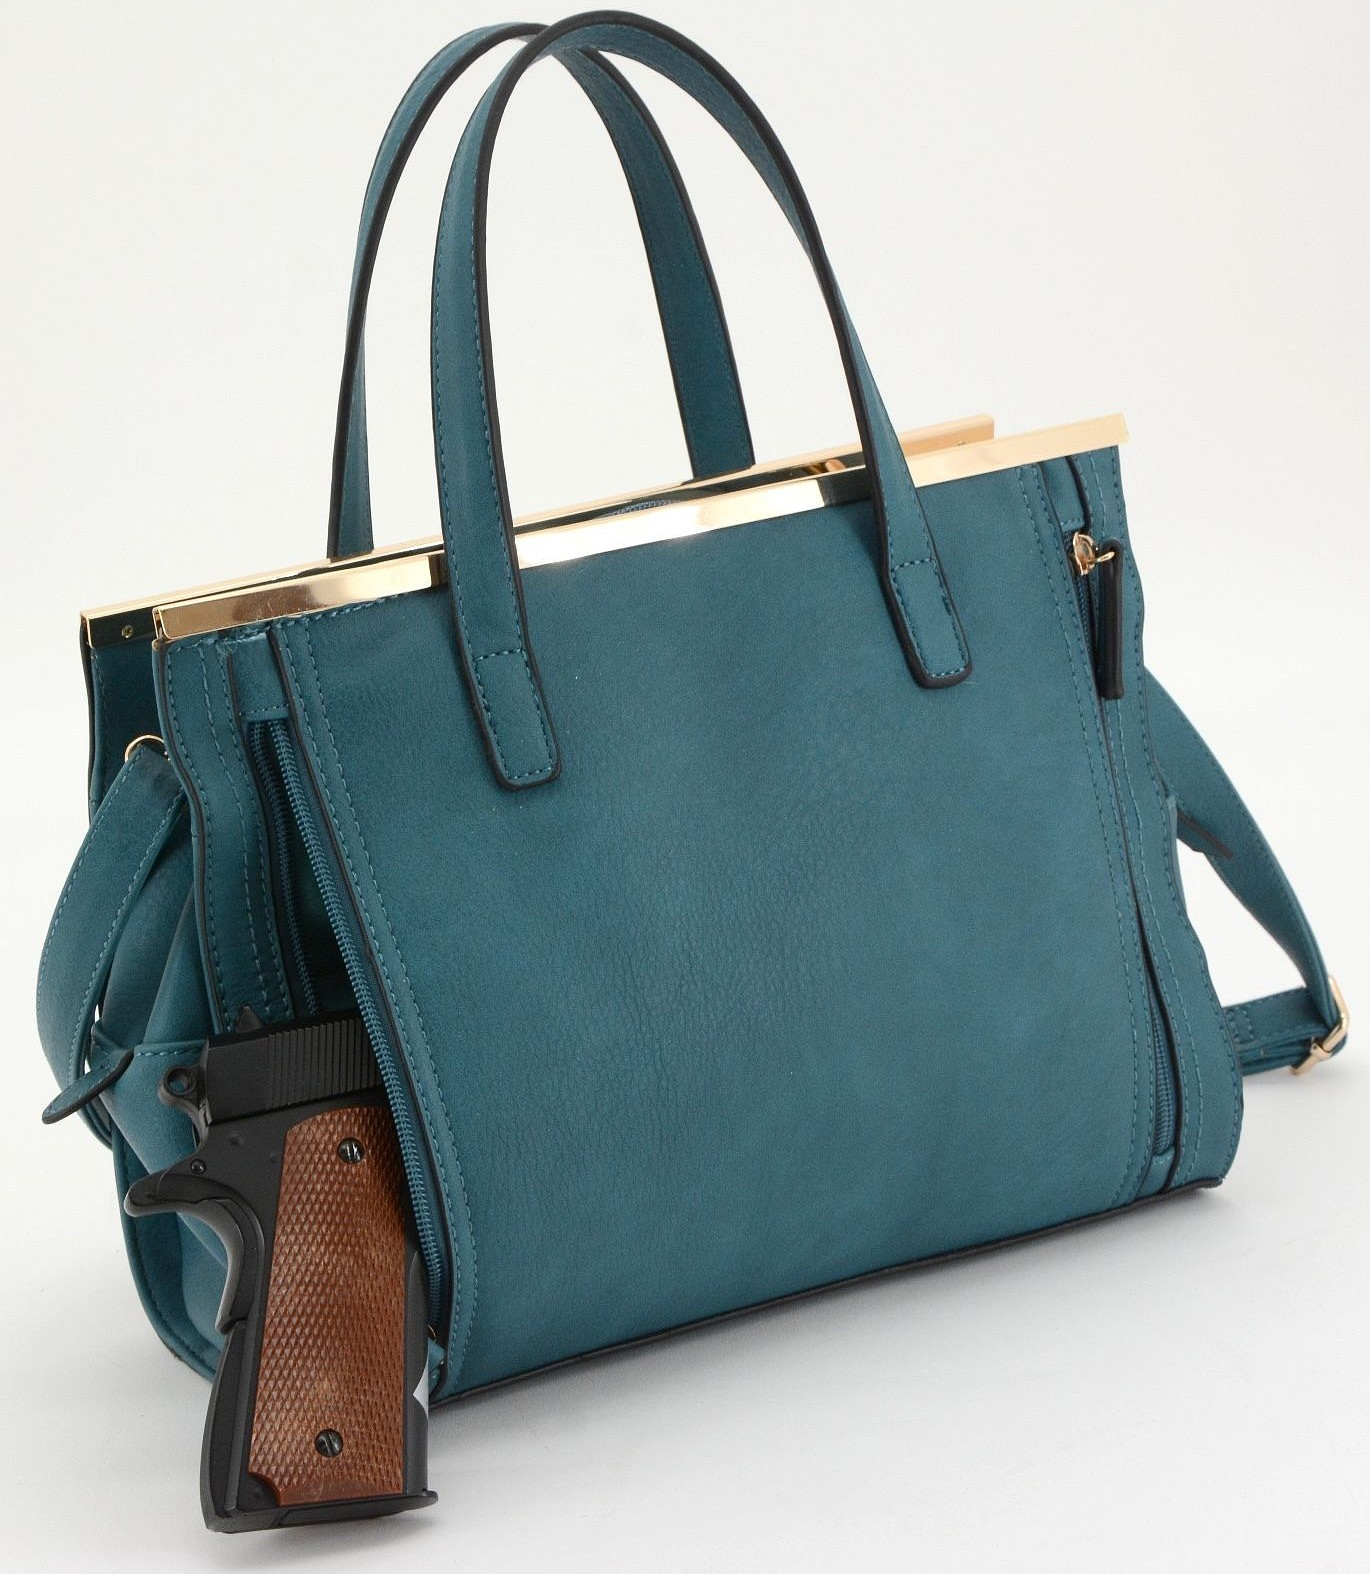 Cameleon Cora Teal Concealed Carry Purse